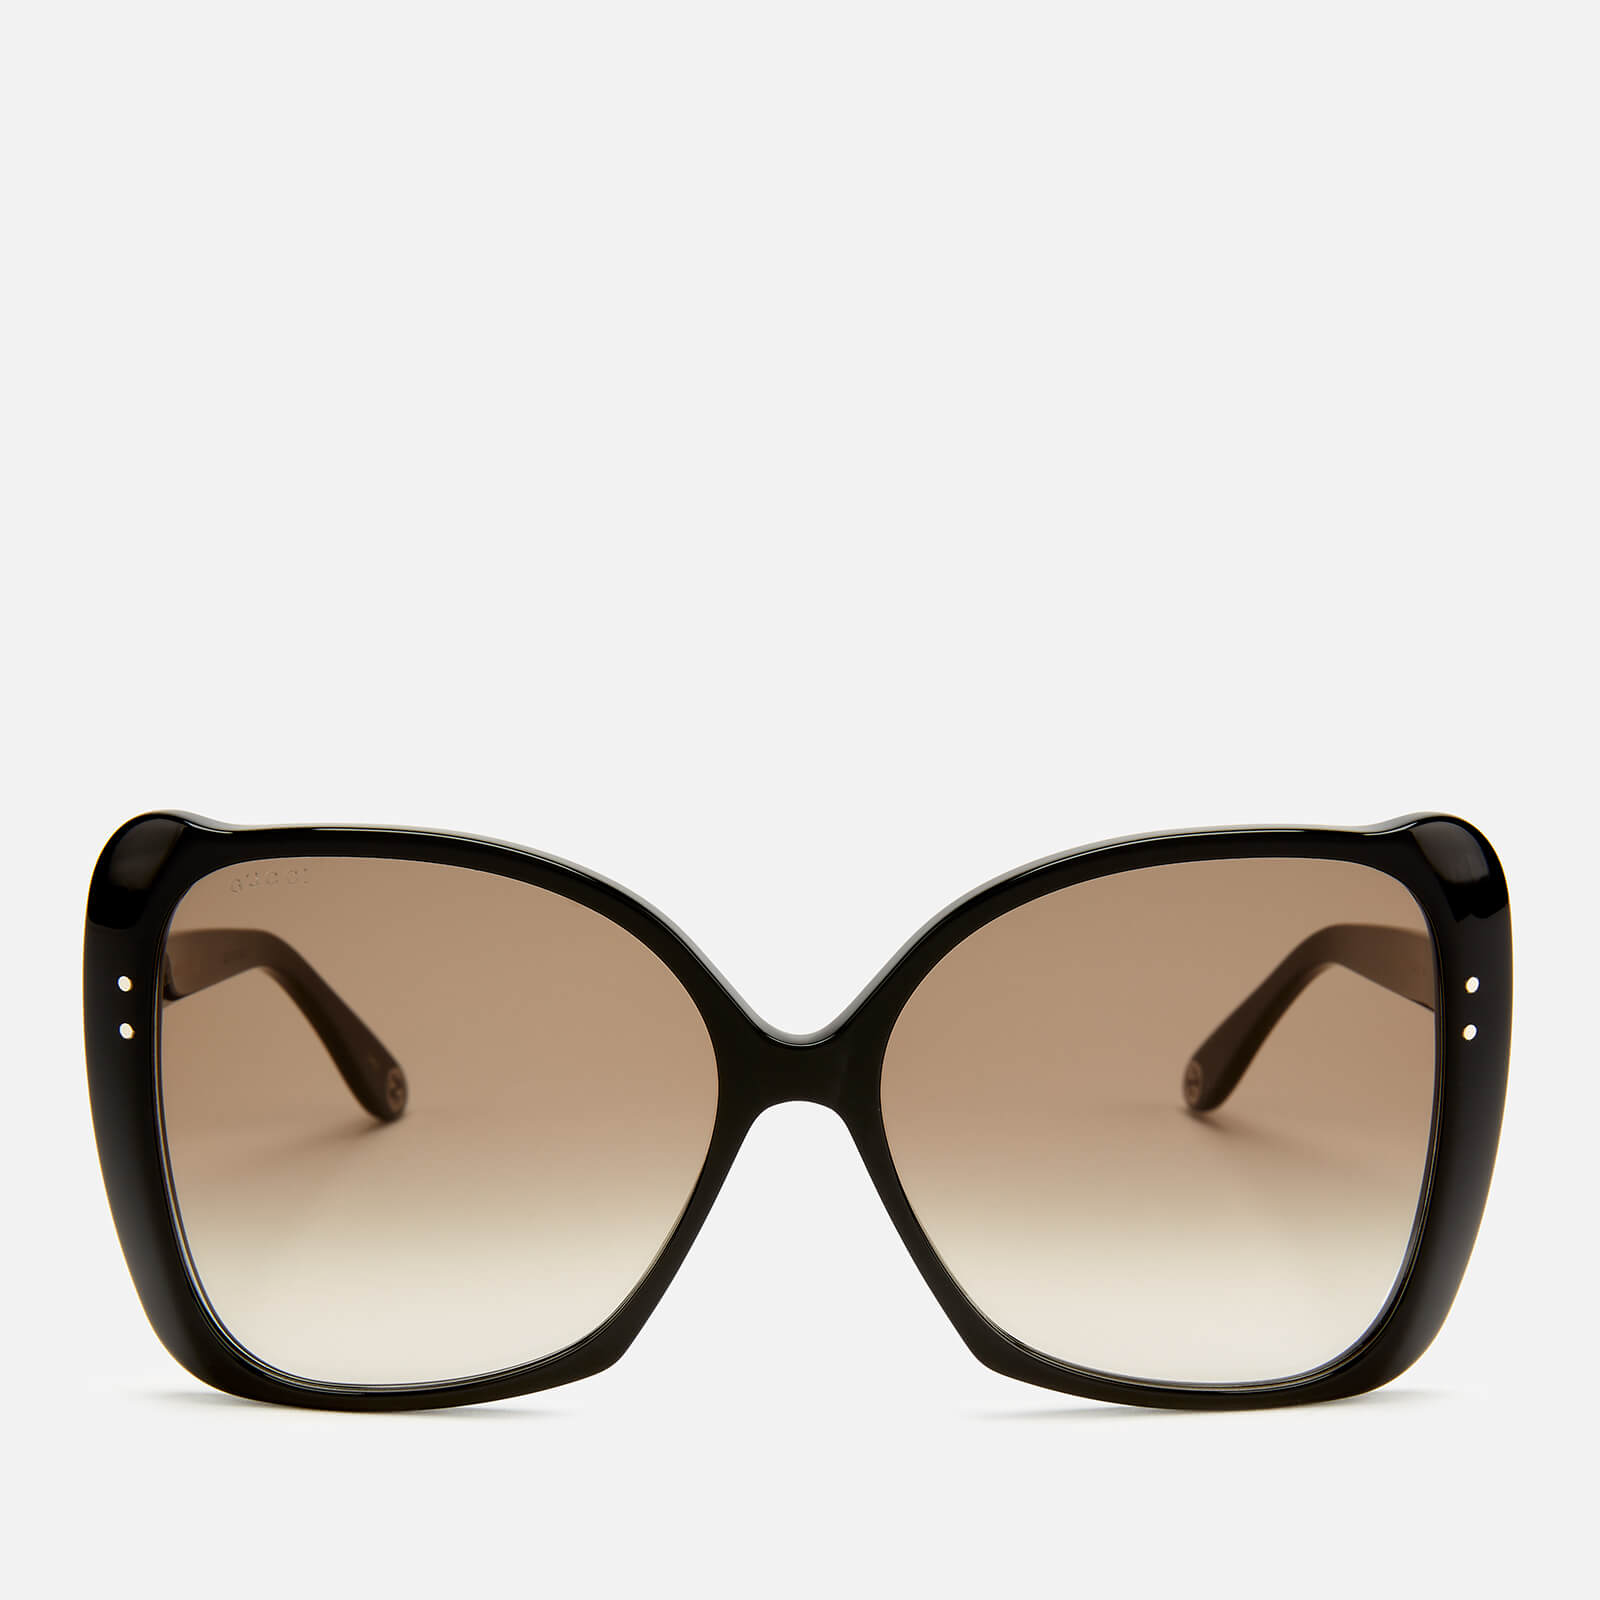 8e3e0dc615b9 Gucci Women's Butterfly Acetate Sunglasses - Black/Brown - Free UK Delivery  over £50